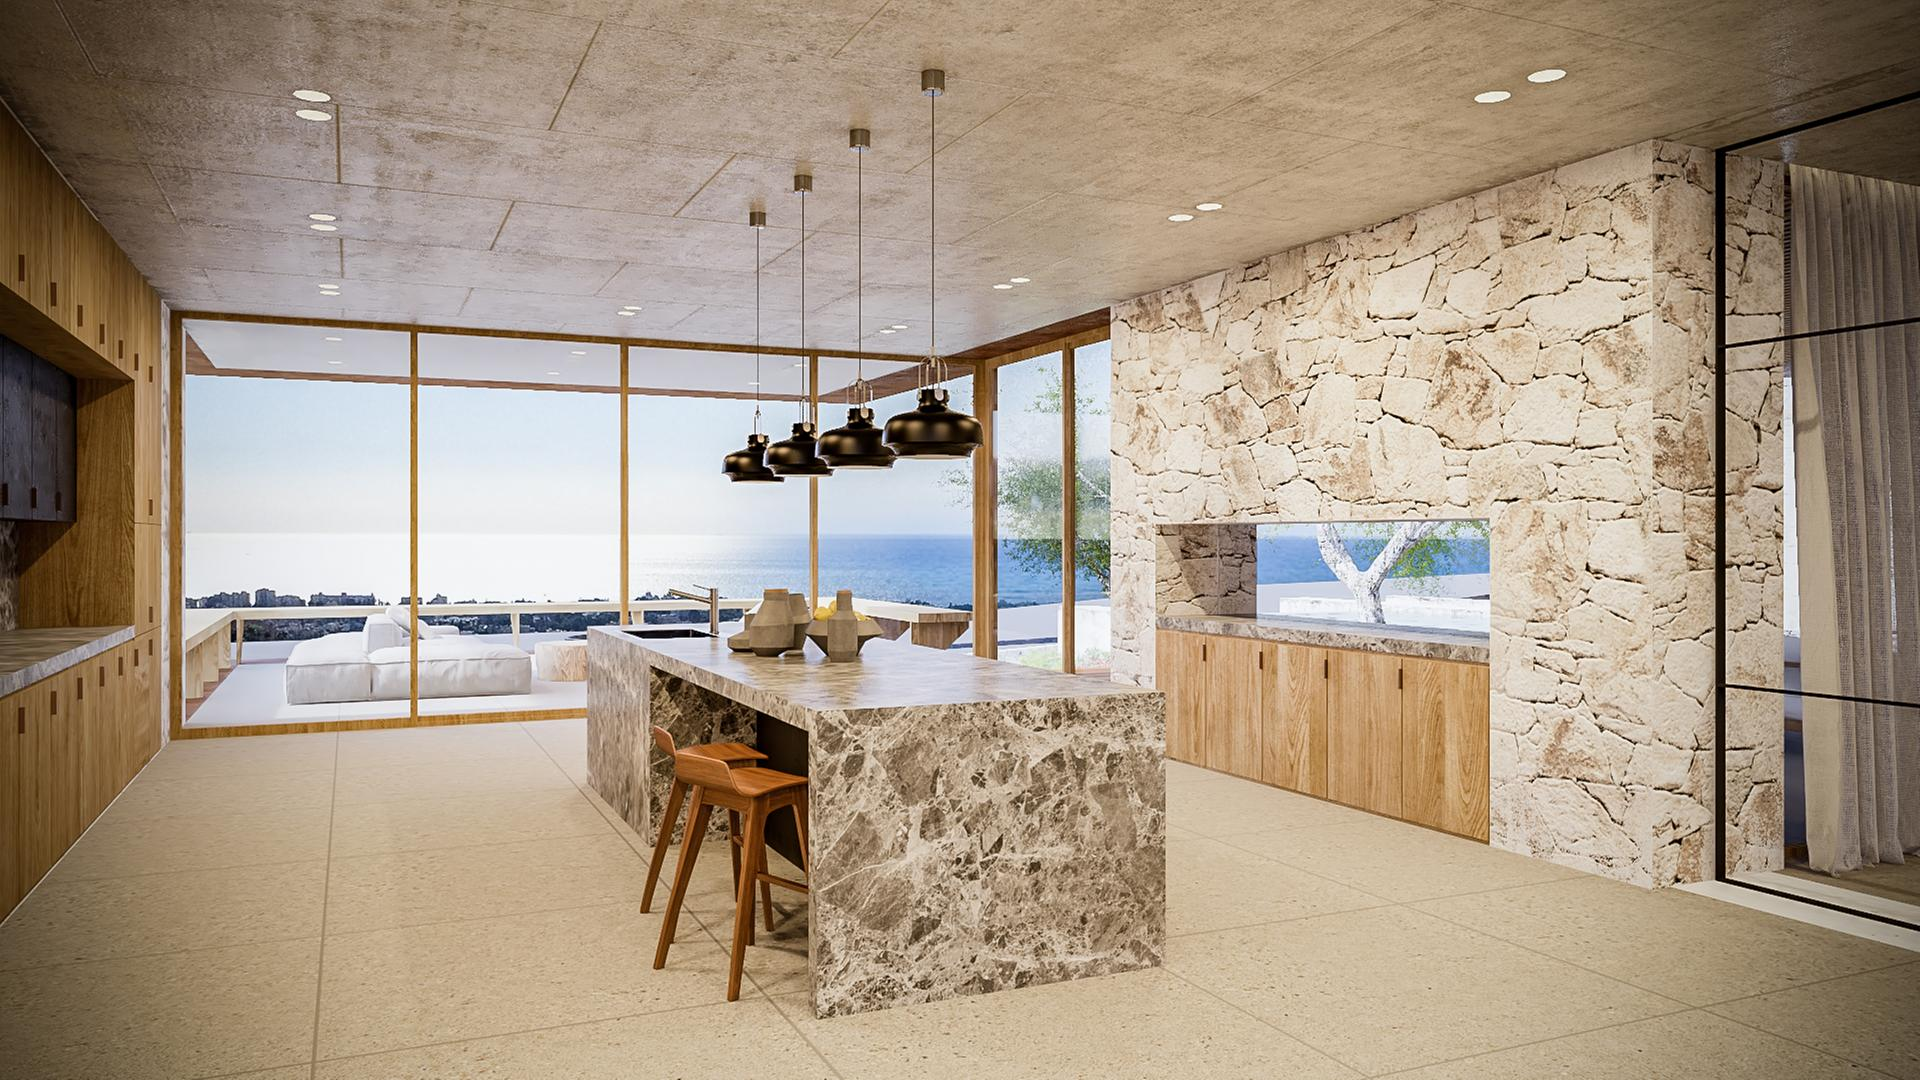 Contemporary Estate In Spain Brings Together Stylish Interiors And The Scenic Mediterranean Sea